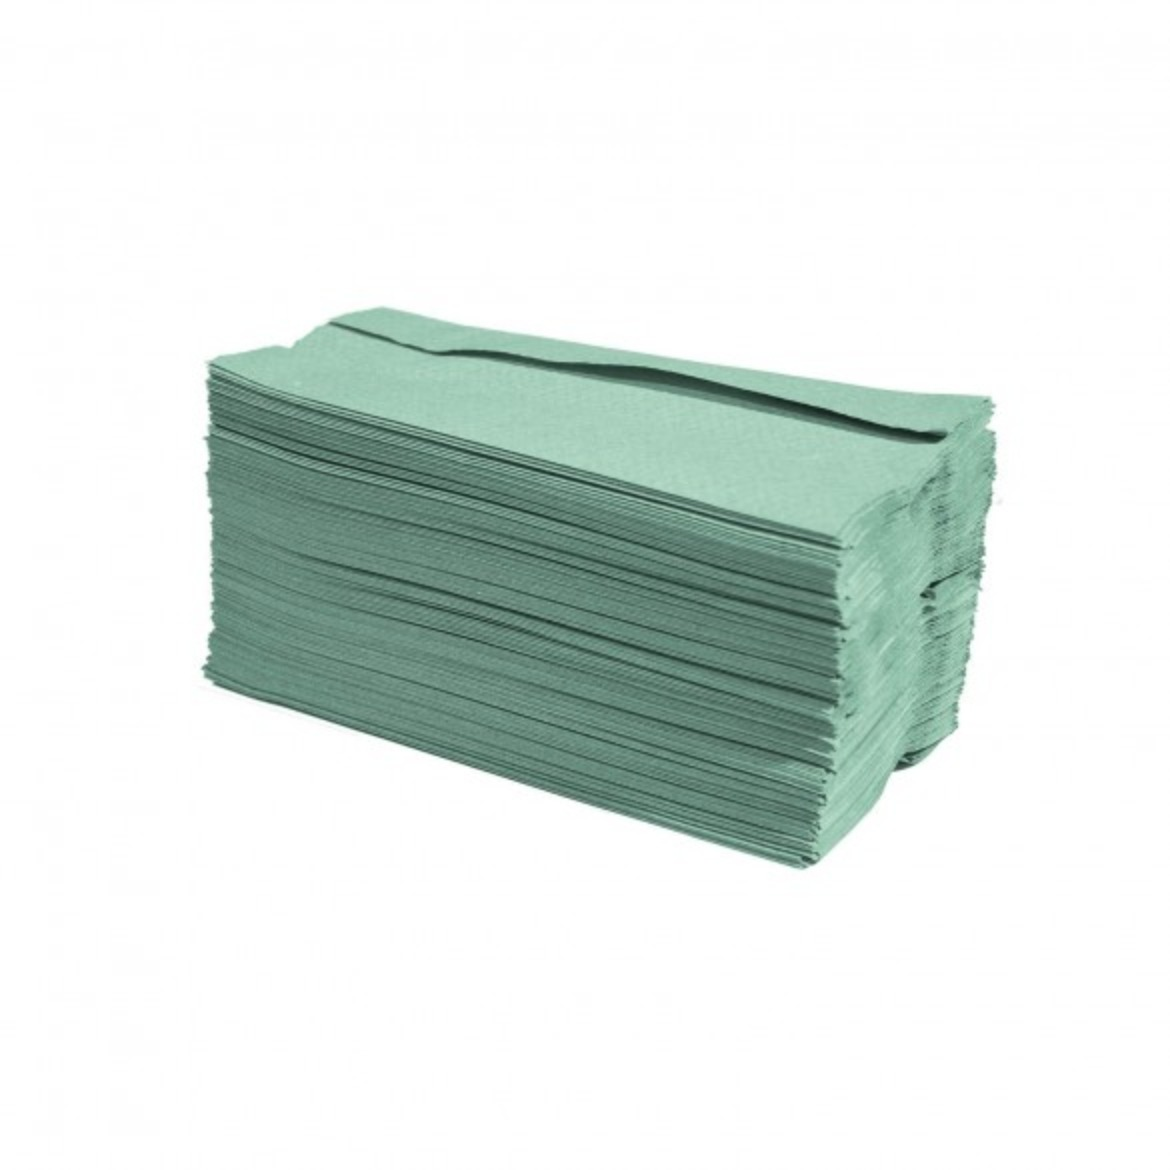 Green 2 Ply C/Fold Hand Towels 1x2400